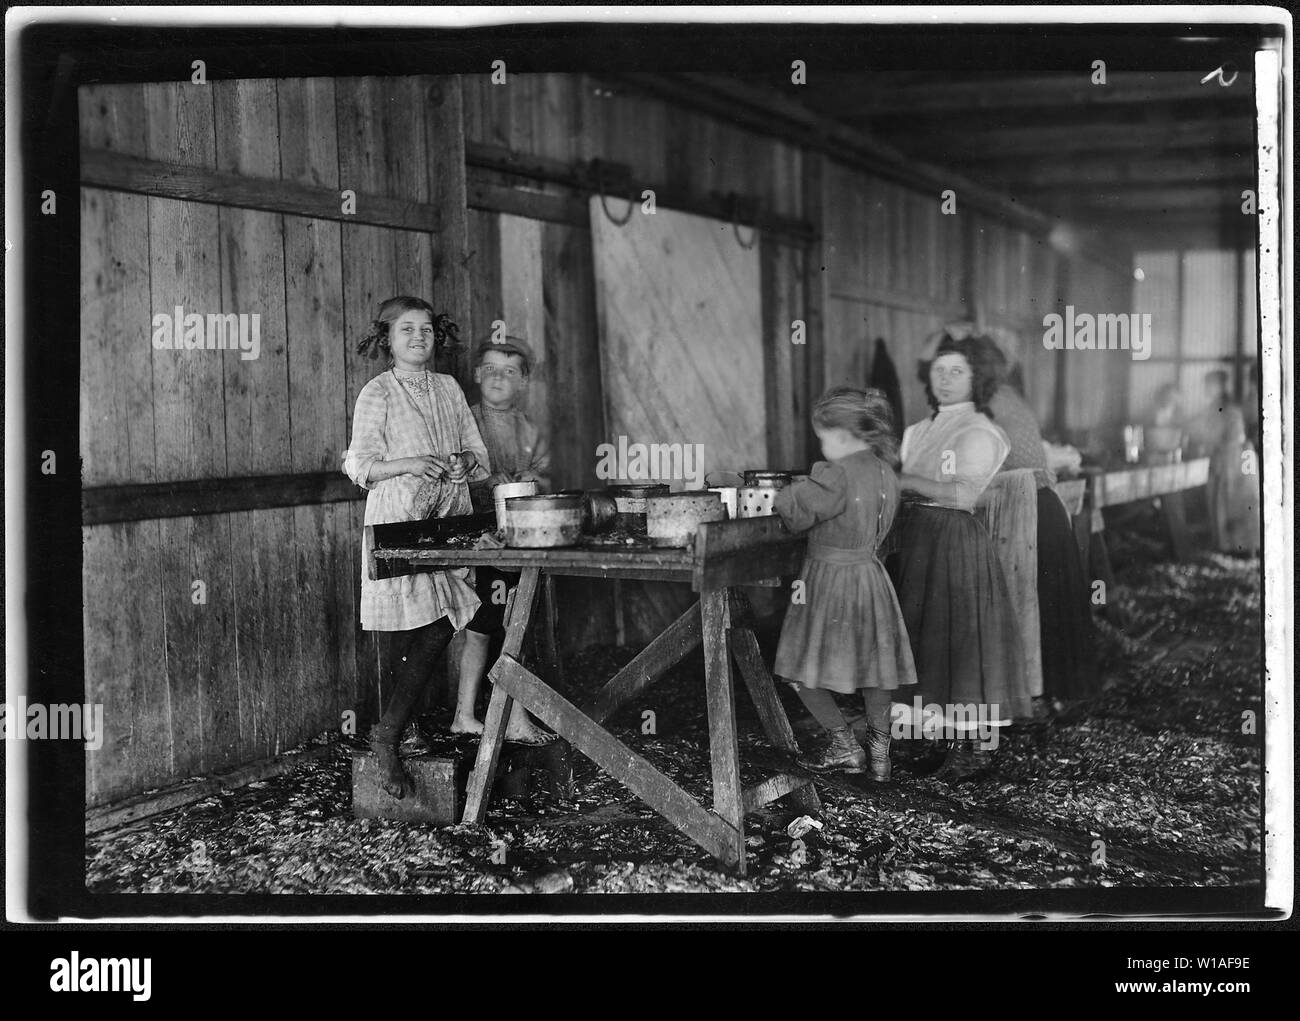 A group of shrimp pickers in Peerless Oyster Co., working during short noon recess. Many workers, including the children, utilize part of the lunch time this way, when there is lunch time allowed. In many canneries, they snatch their lunches as best they may while the work goes on just the same and others are ahead of them. Bay St. Louis, Miss. - Stock Image